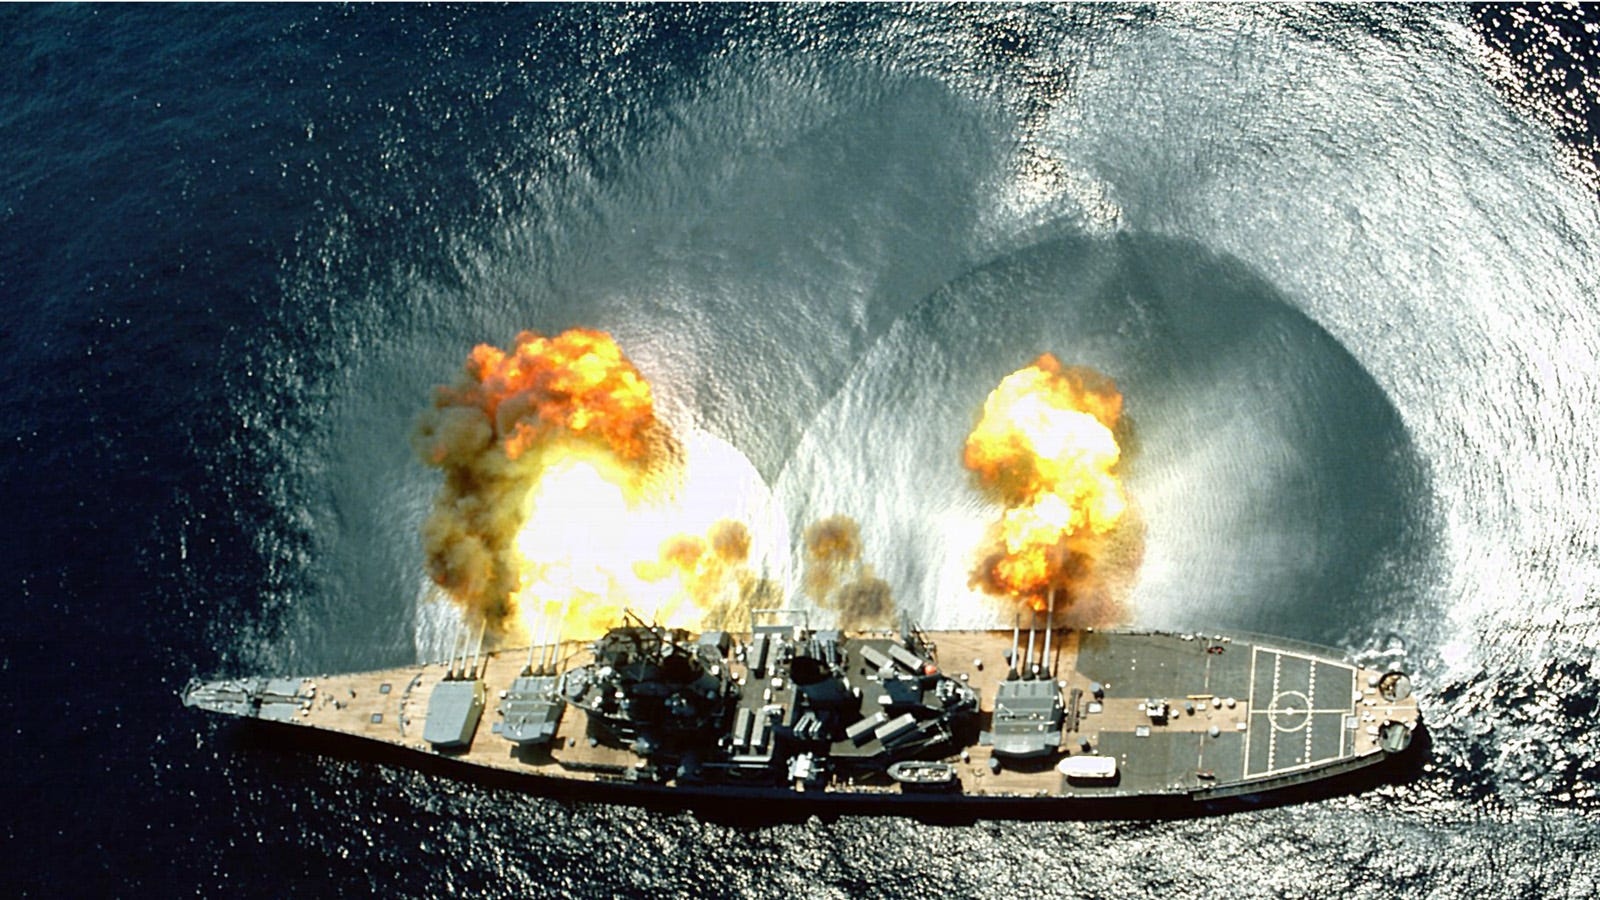 What the Navy Shoots for Target Practice